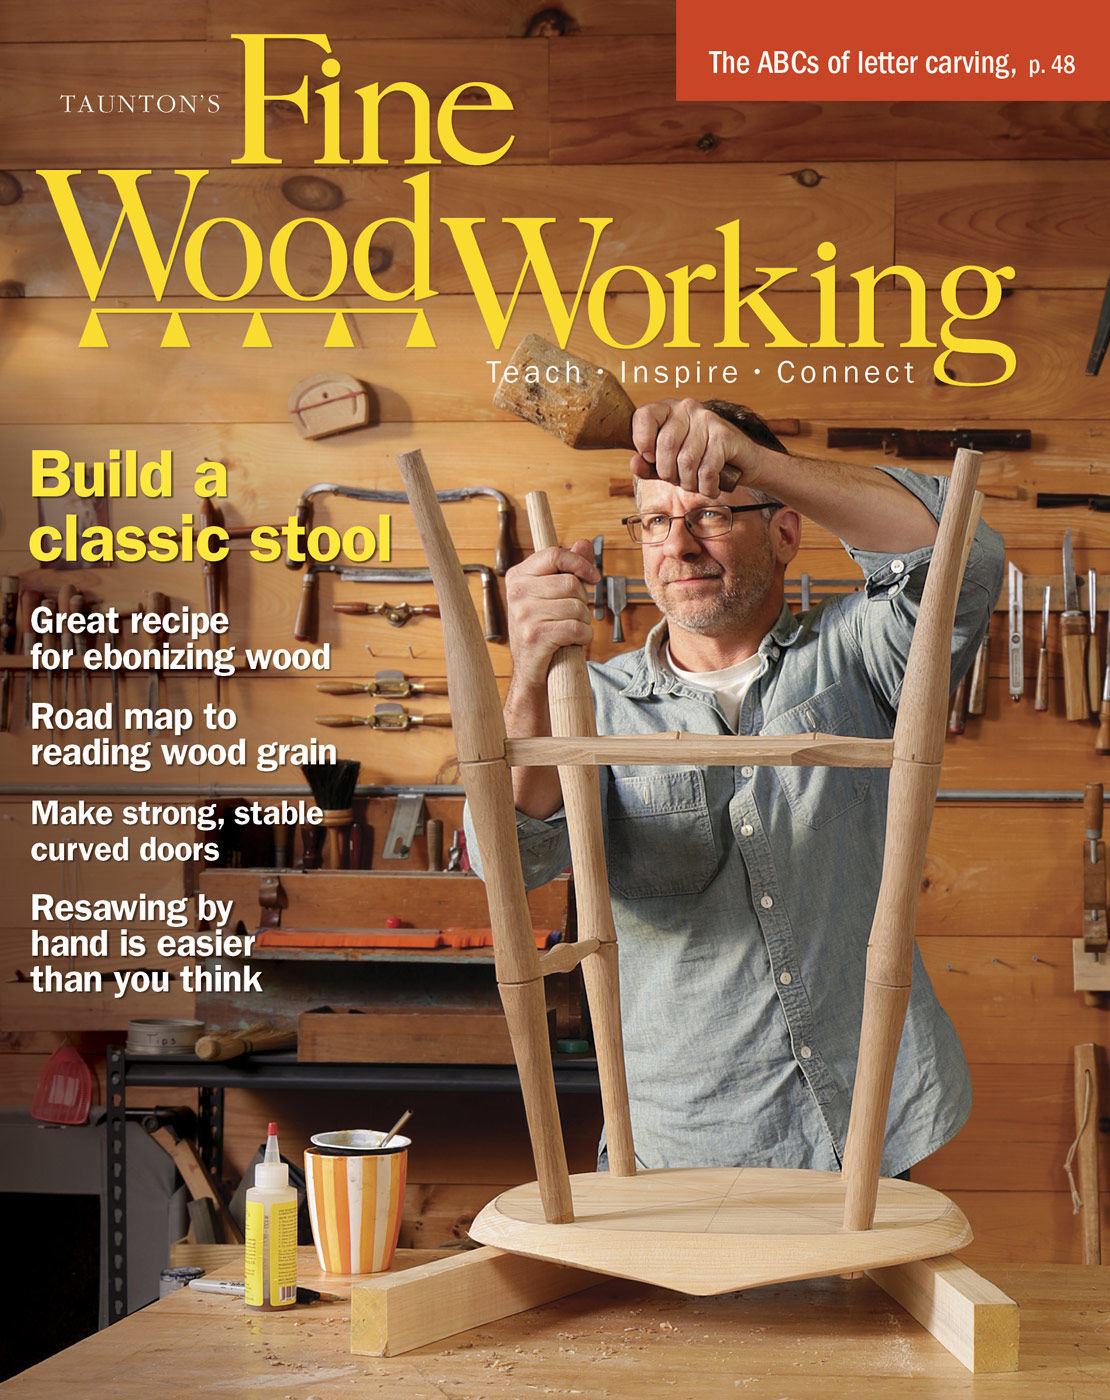 Popular Woodworking Blog Network